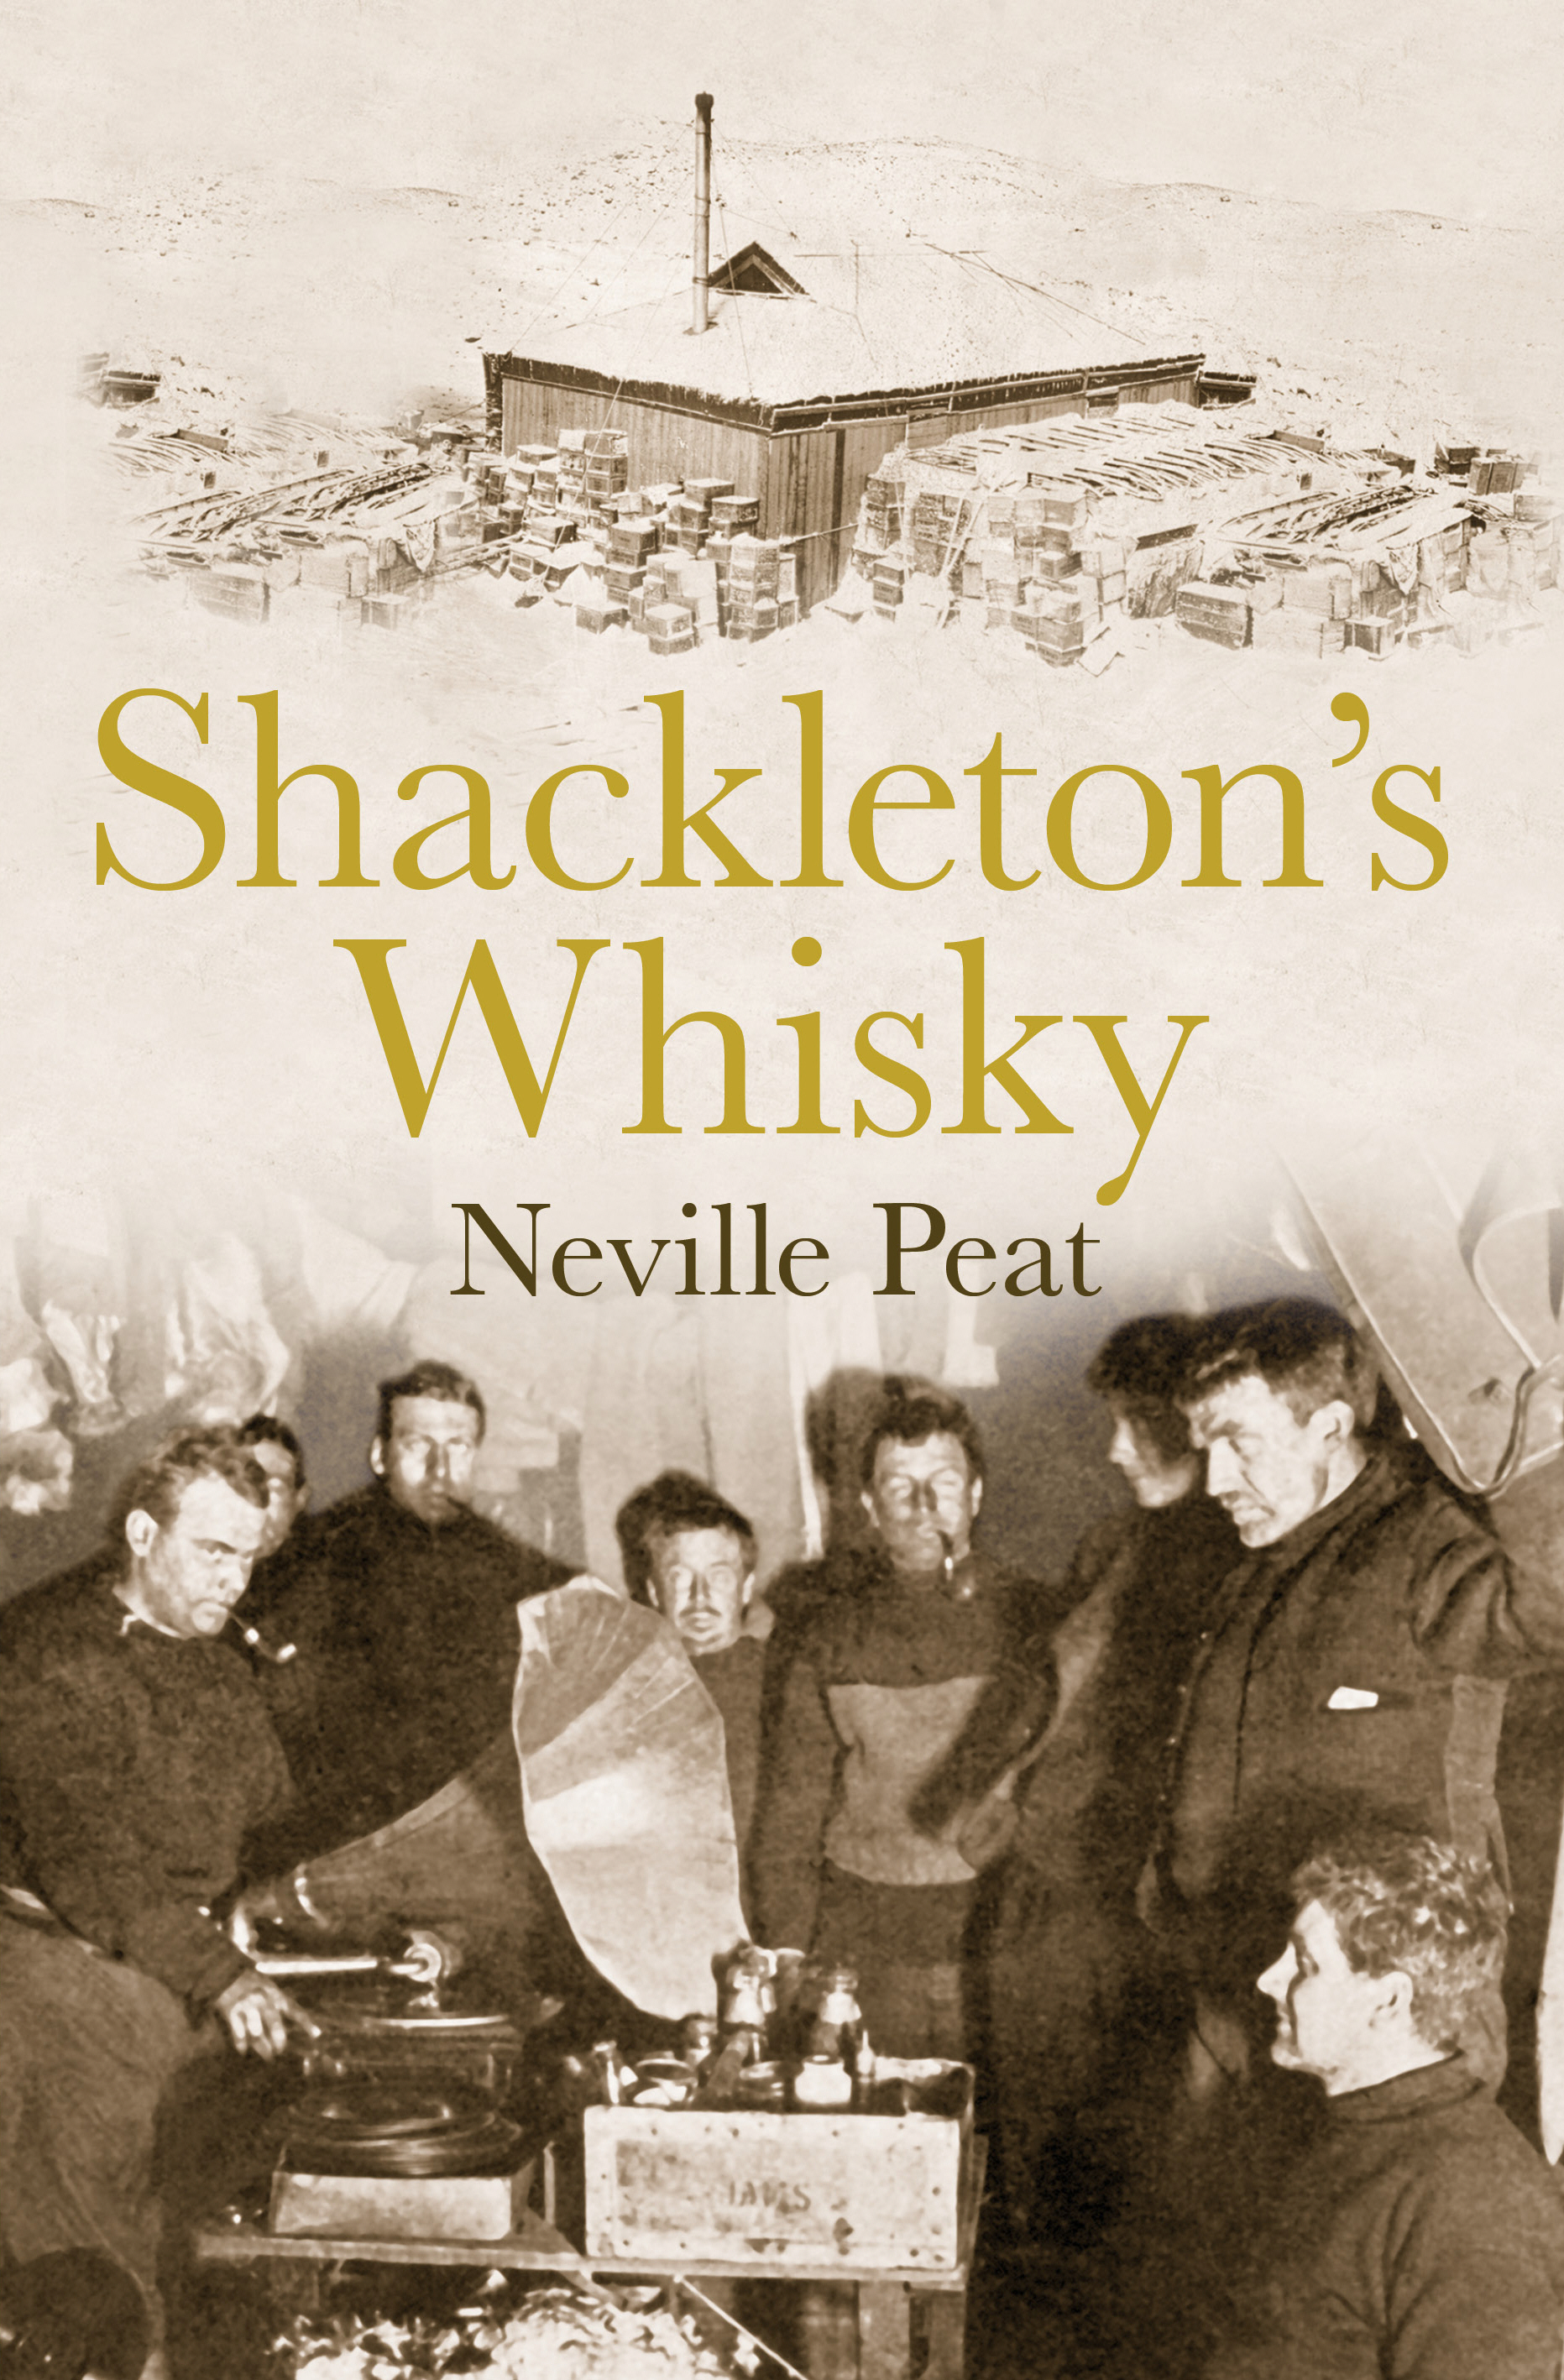 Shackleton's Whisky The extraordinary story of an heroic explorer and twenty-five cases of unique MacKinlay's Old Scotch